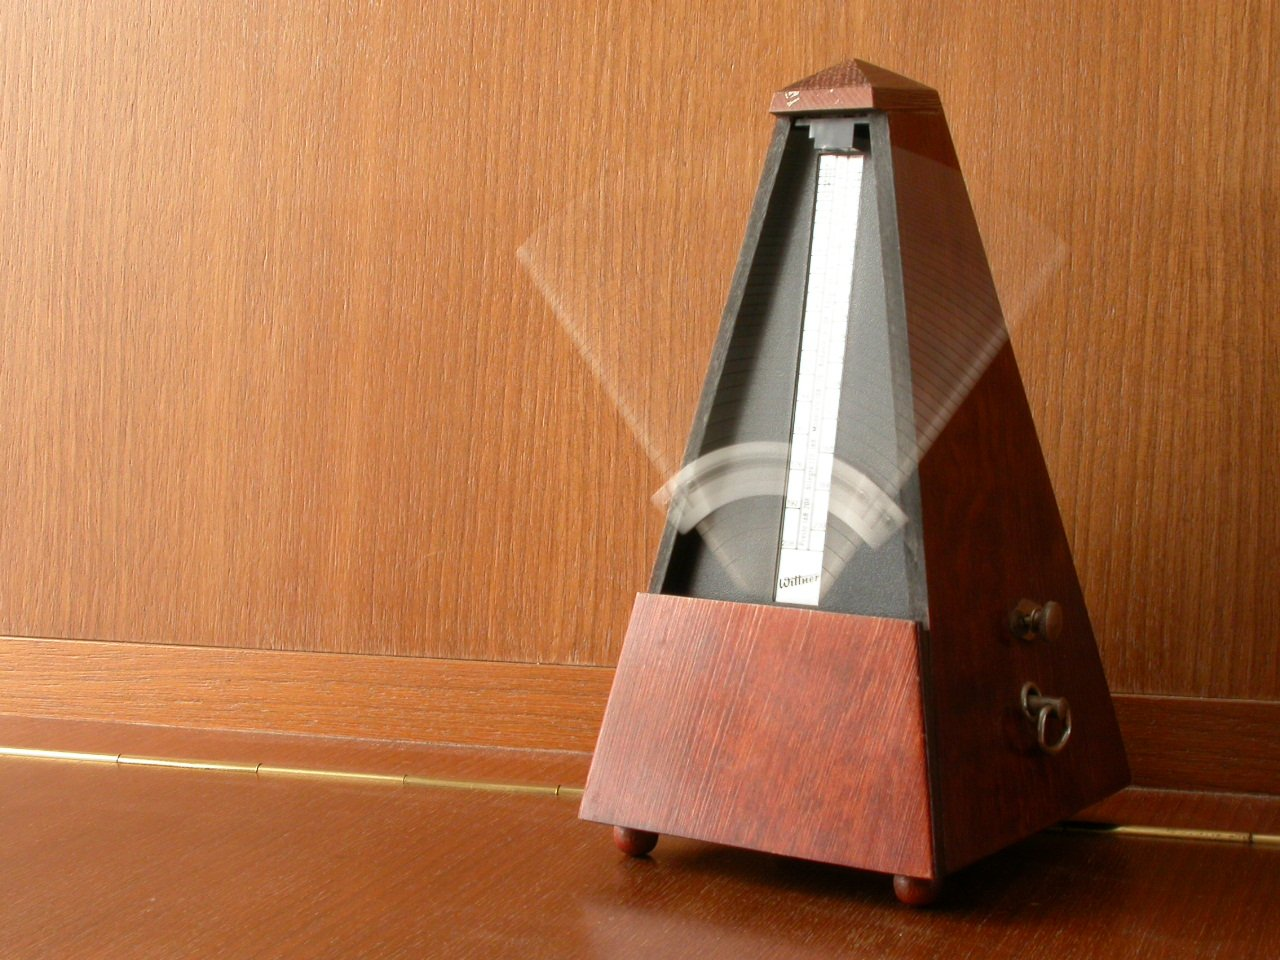 How to Use a Metronome to Improve Your Piping